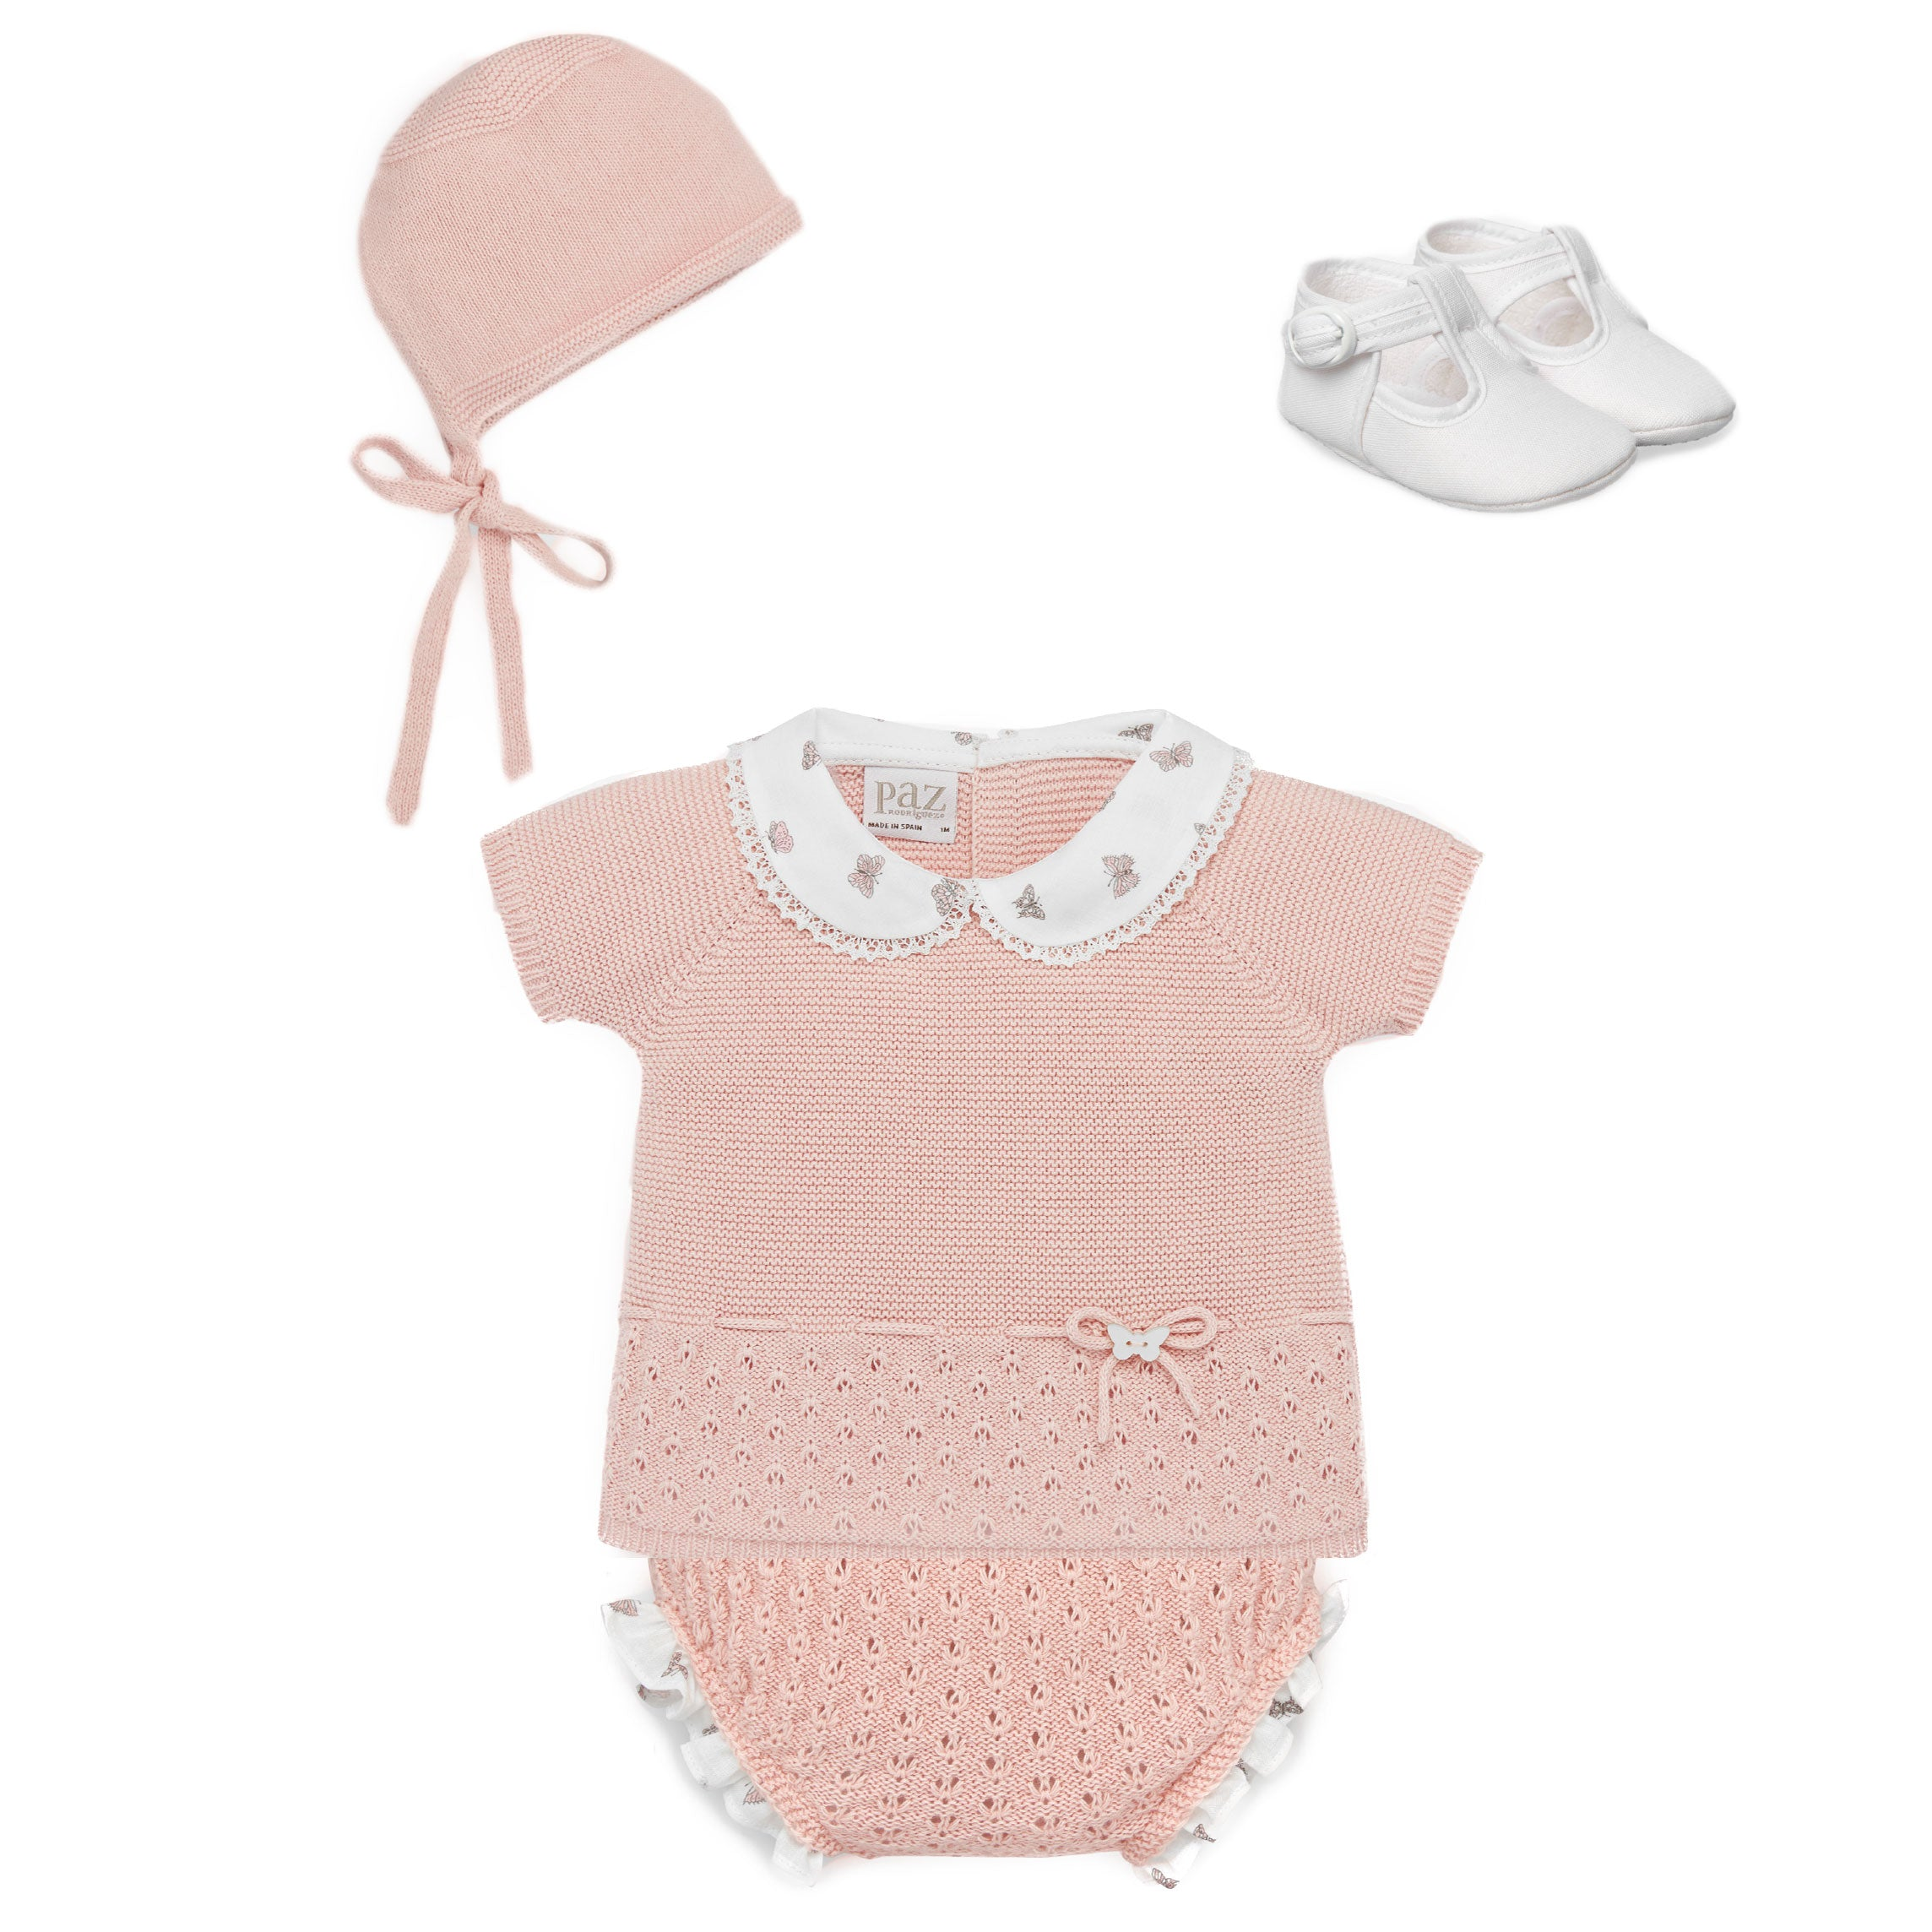 Paz Rodriguez Luxury Baby Girl Gift at Bonjour Baby Baskets, Spring Baby Fashion Previews